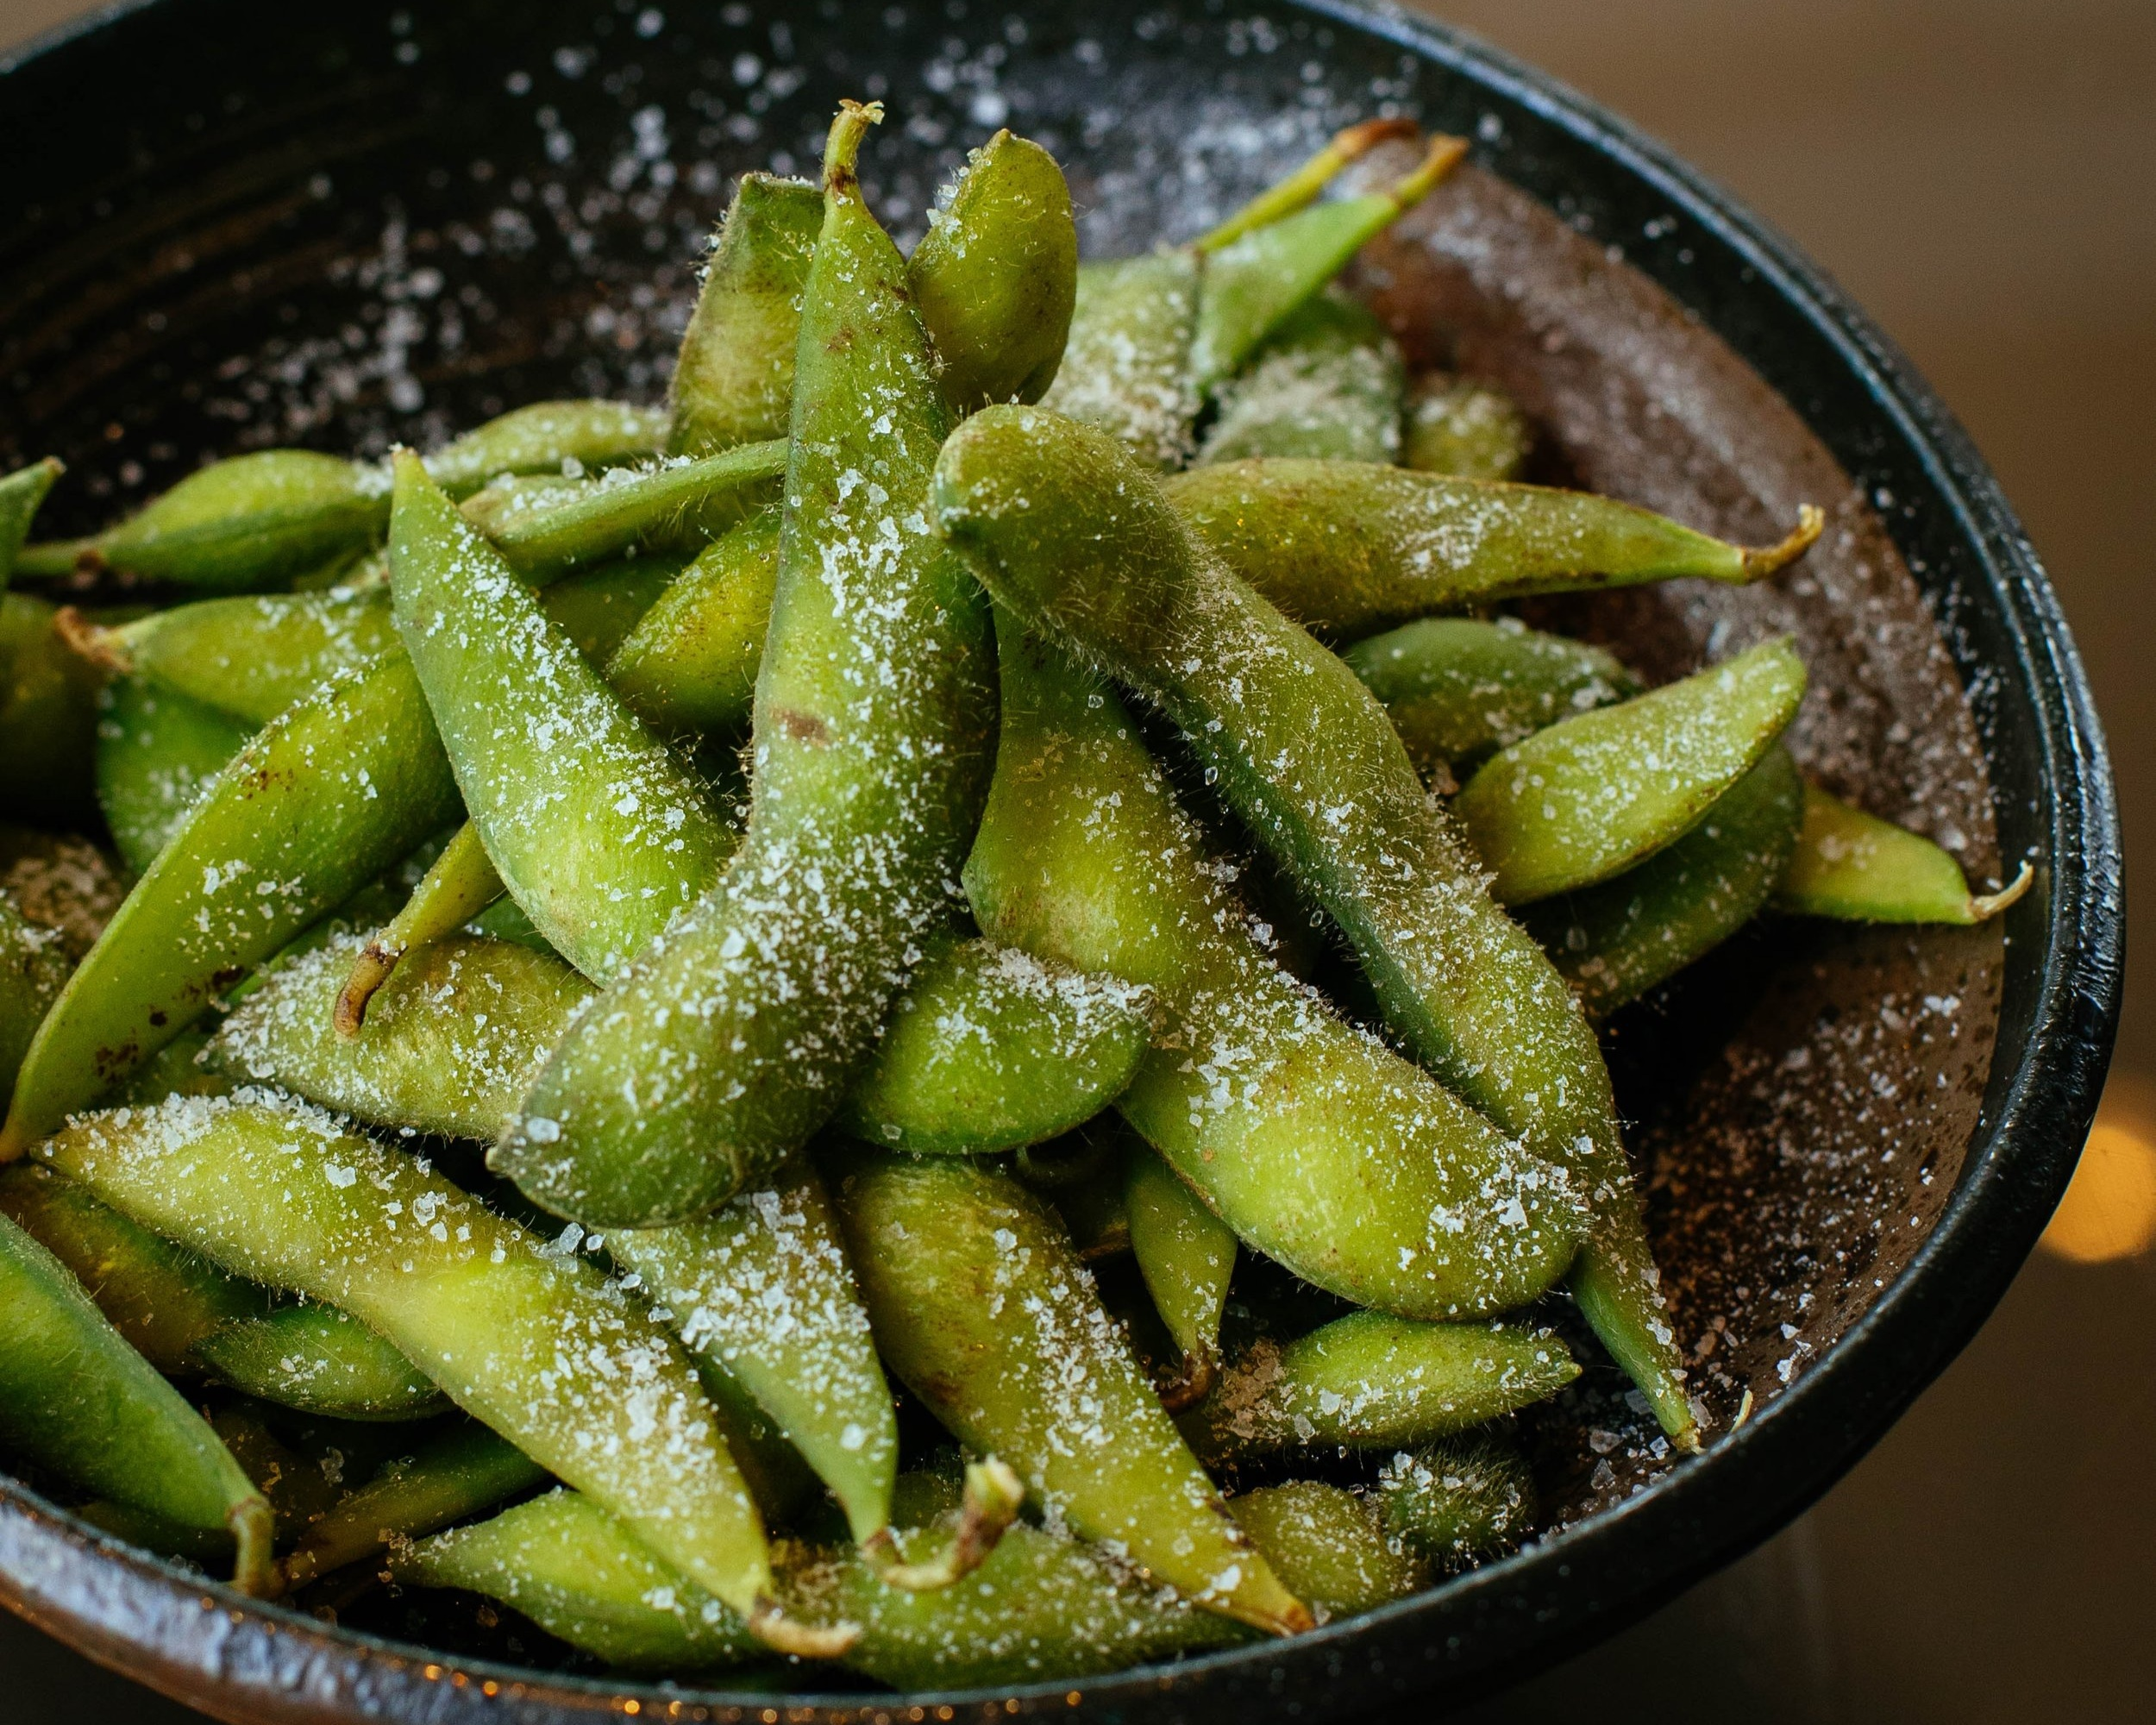 Lightly steamed edamame with or without salt is a delicious snack. Look for it in the freezer section of your grocery store.